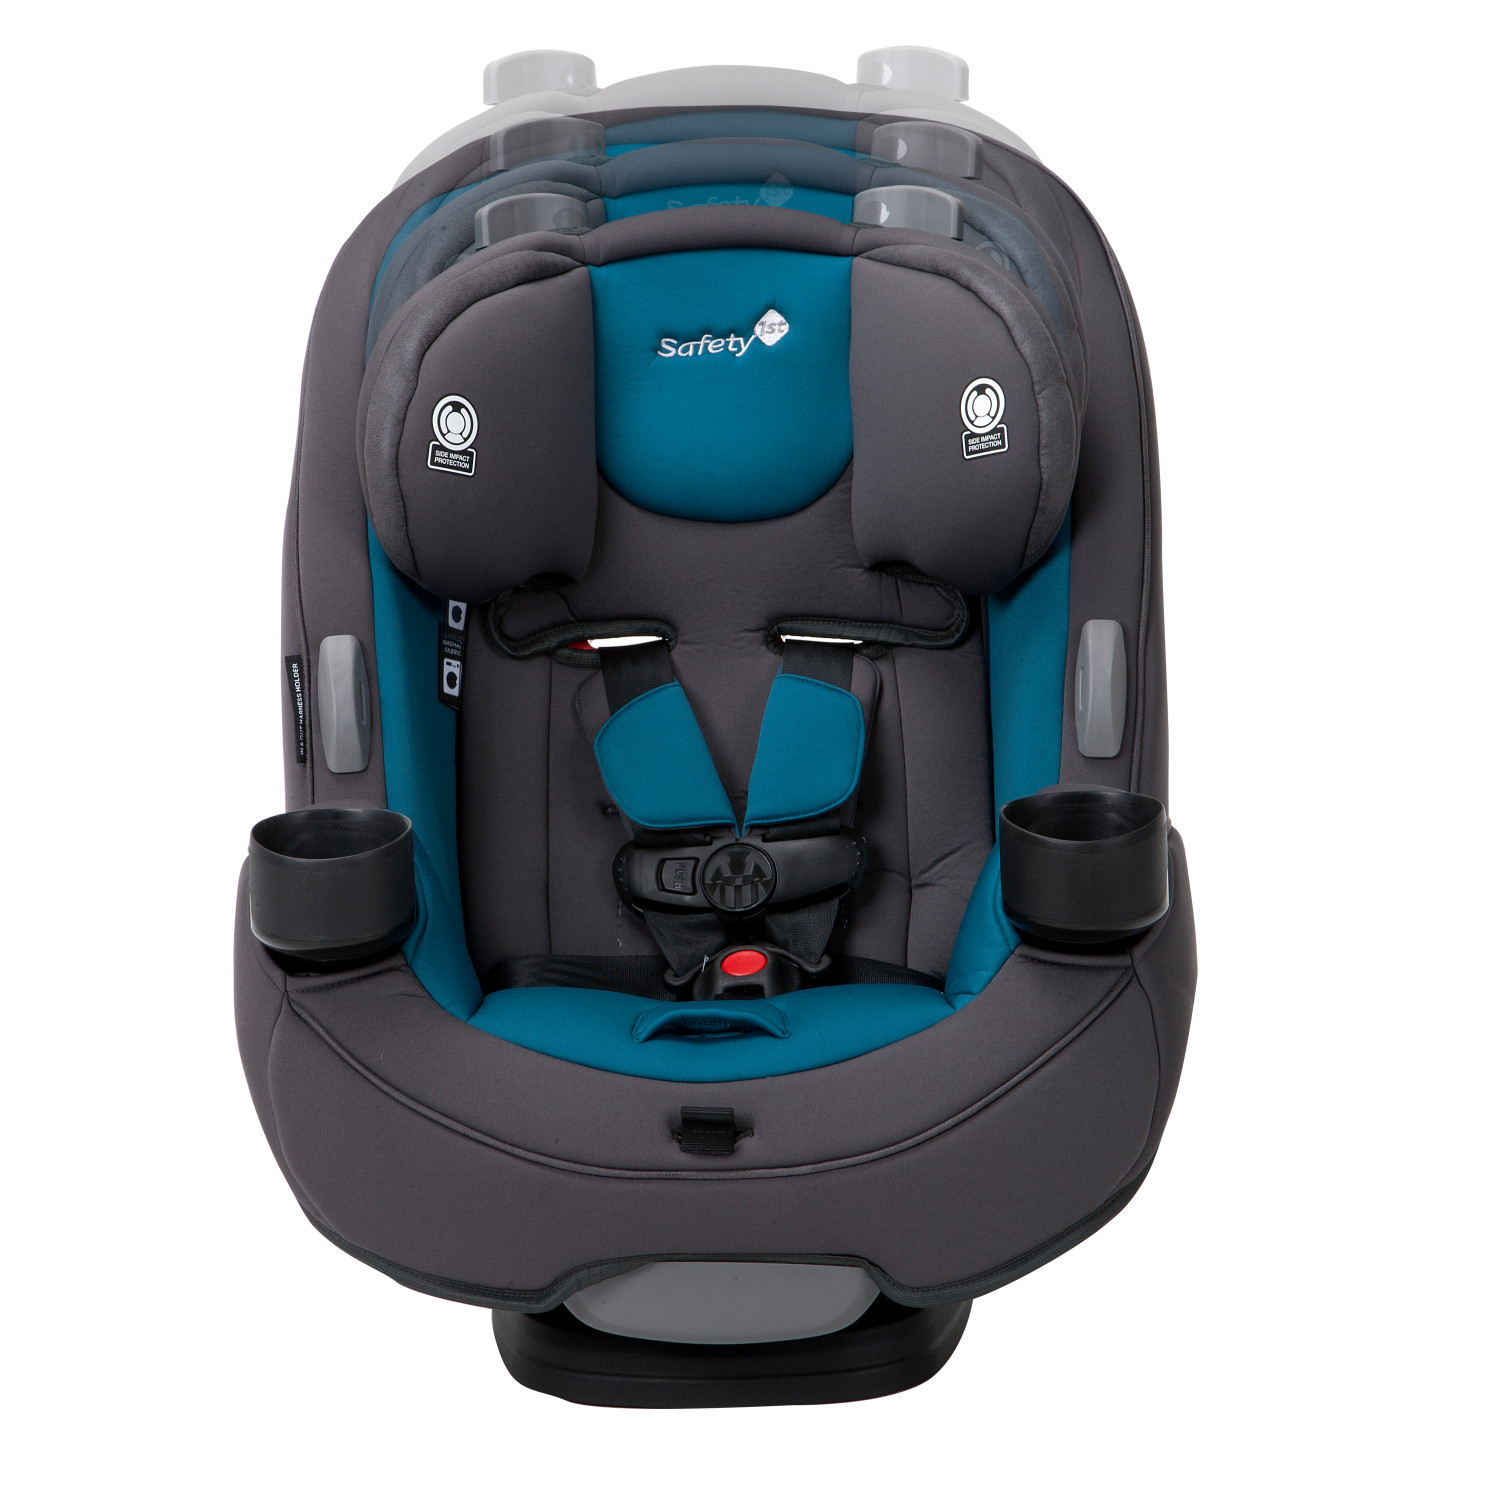 Safety-1st-Go-and-Grow-3-in-1-Convertible-Car-Seat